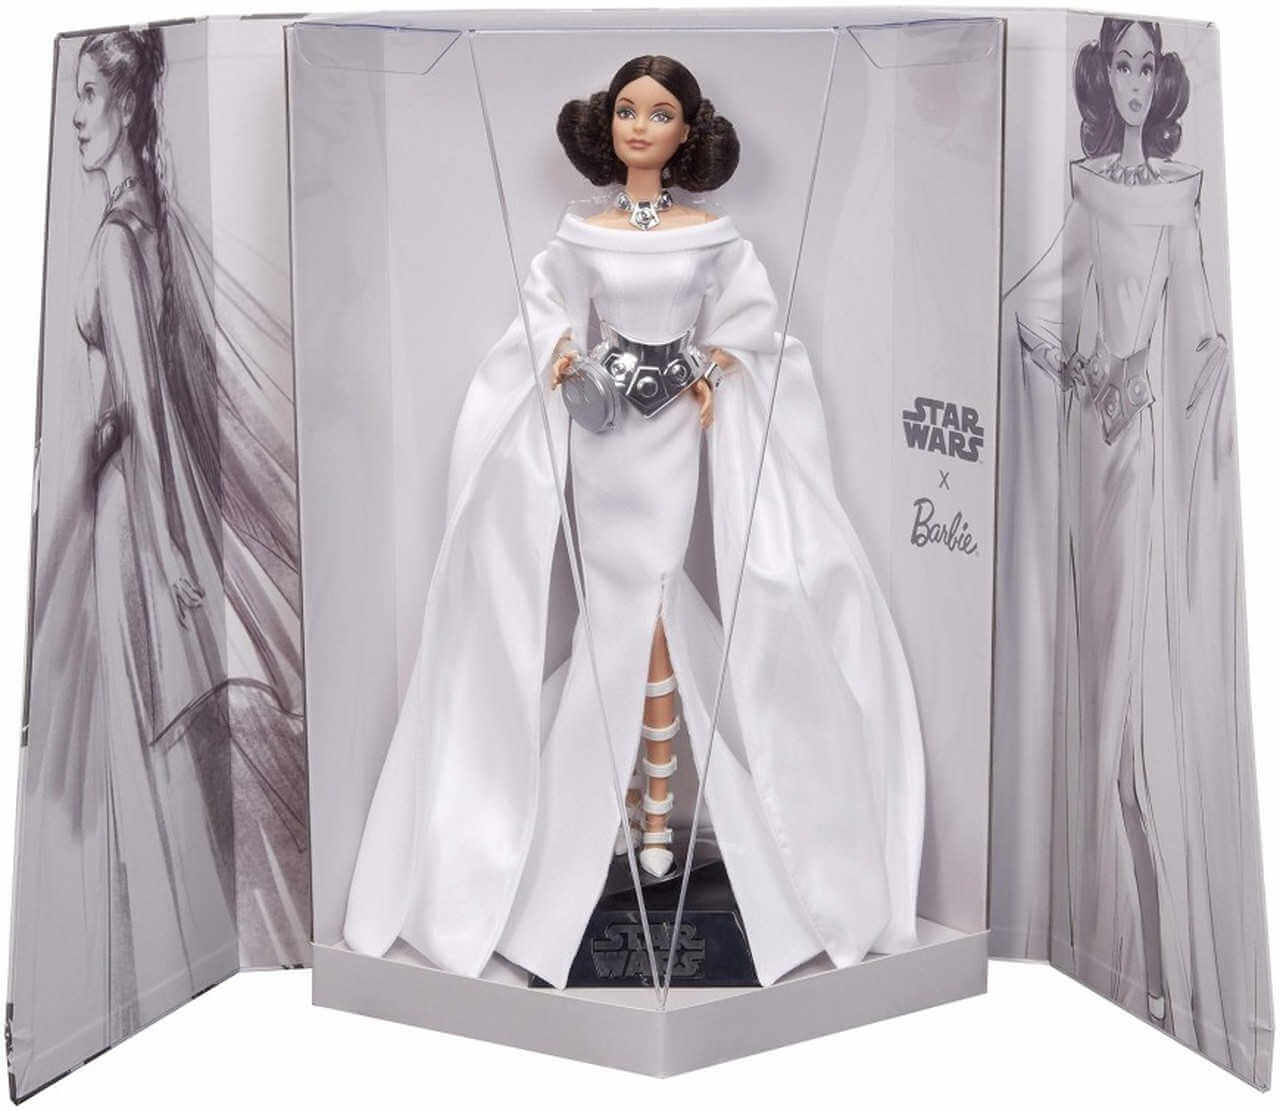 Barbie star wars princesa leia en caja